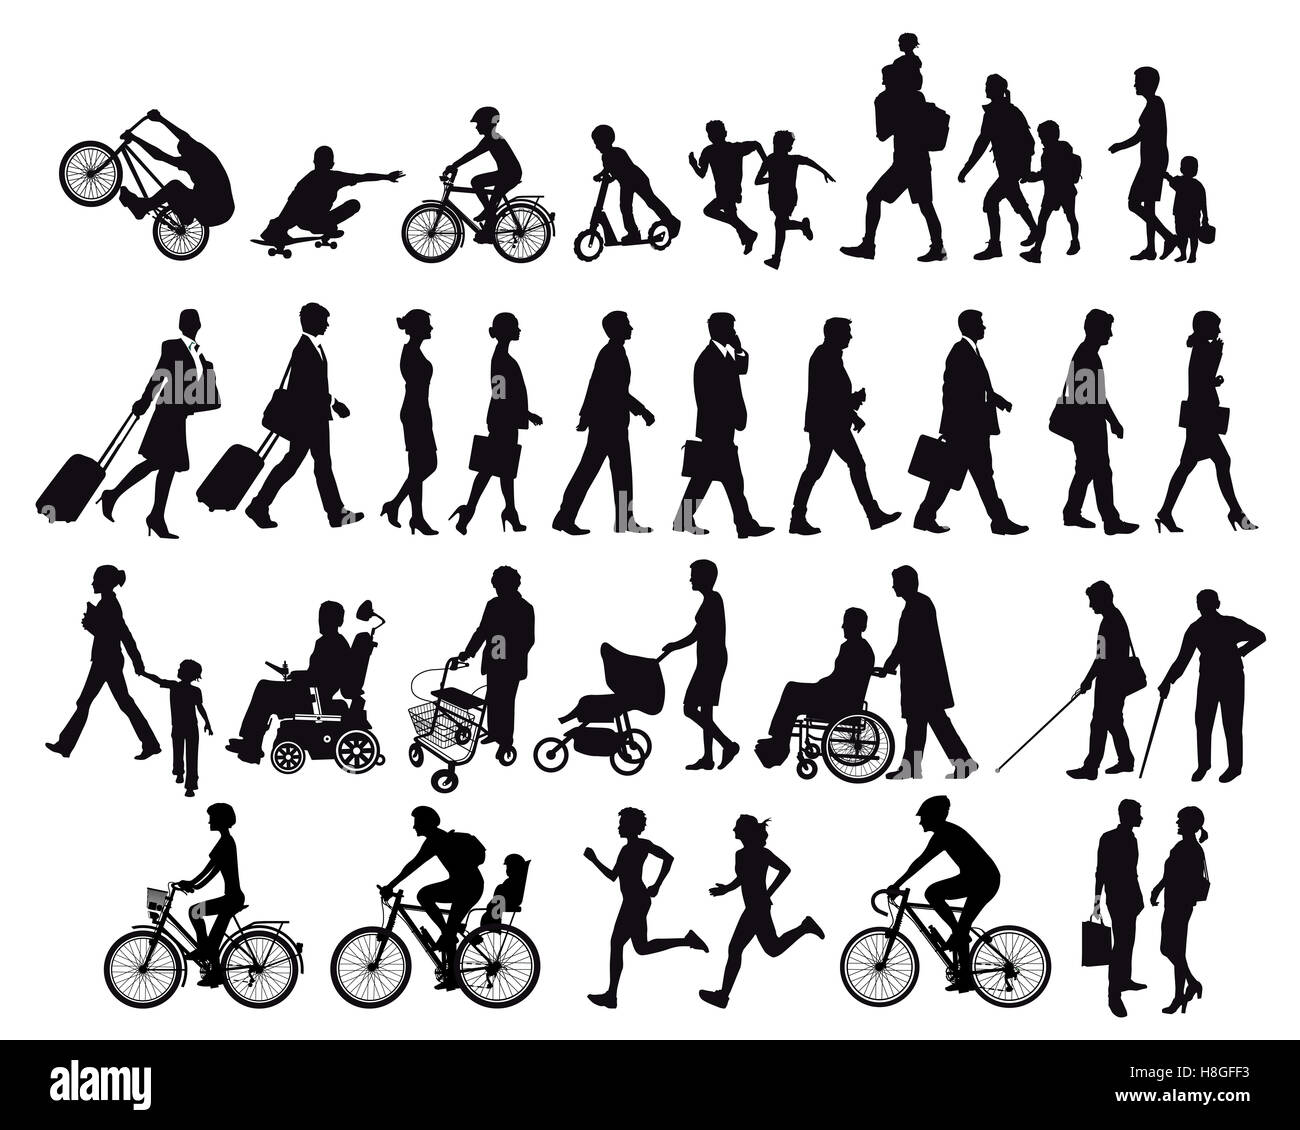 People on the move and Activities - Stock Image